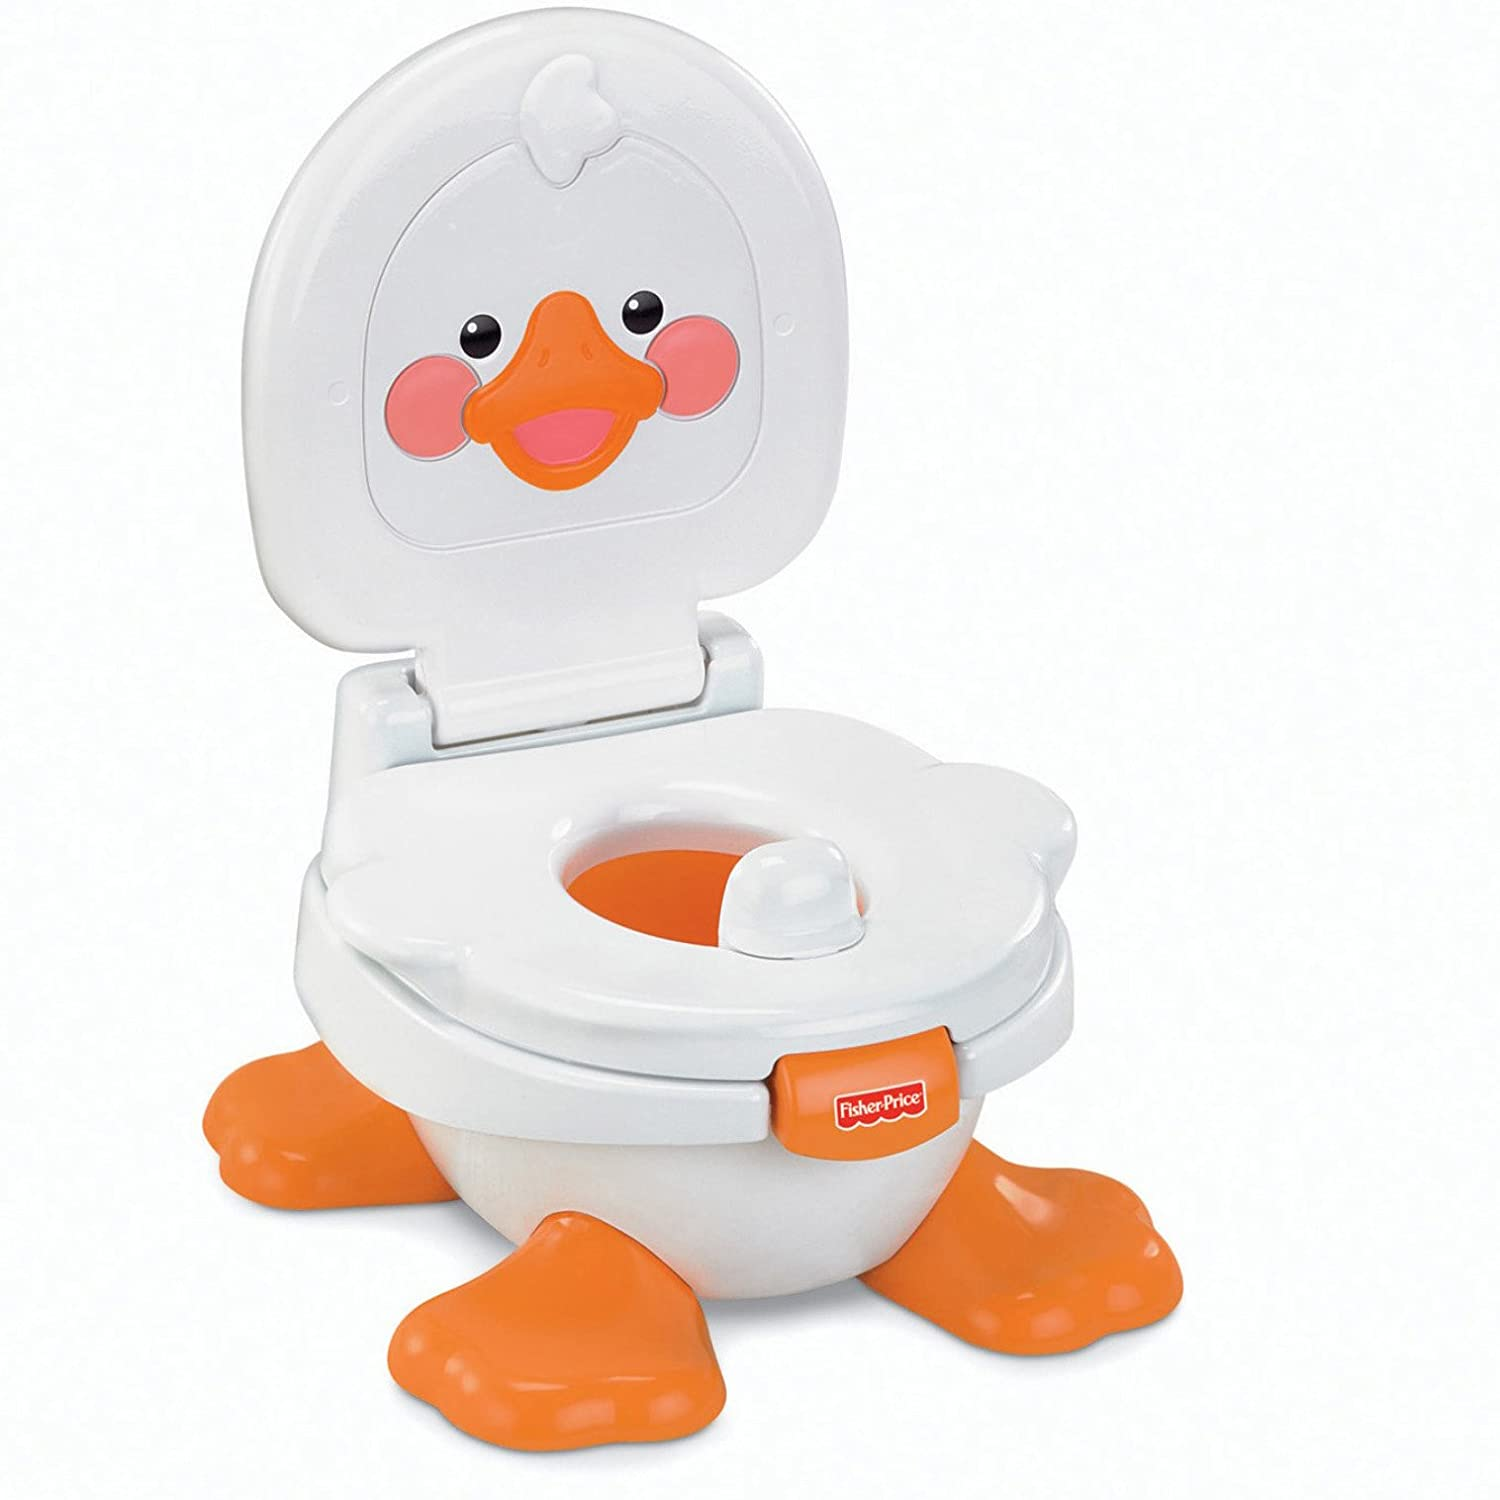 Fisher-Price Ducky Fun 3-in-1 Potty Amazonca/FISNE T4255 124_T4255